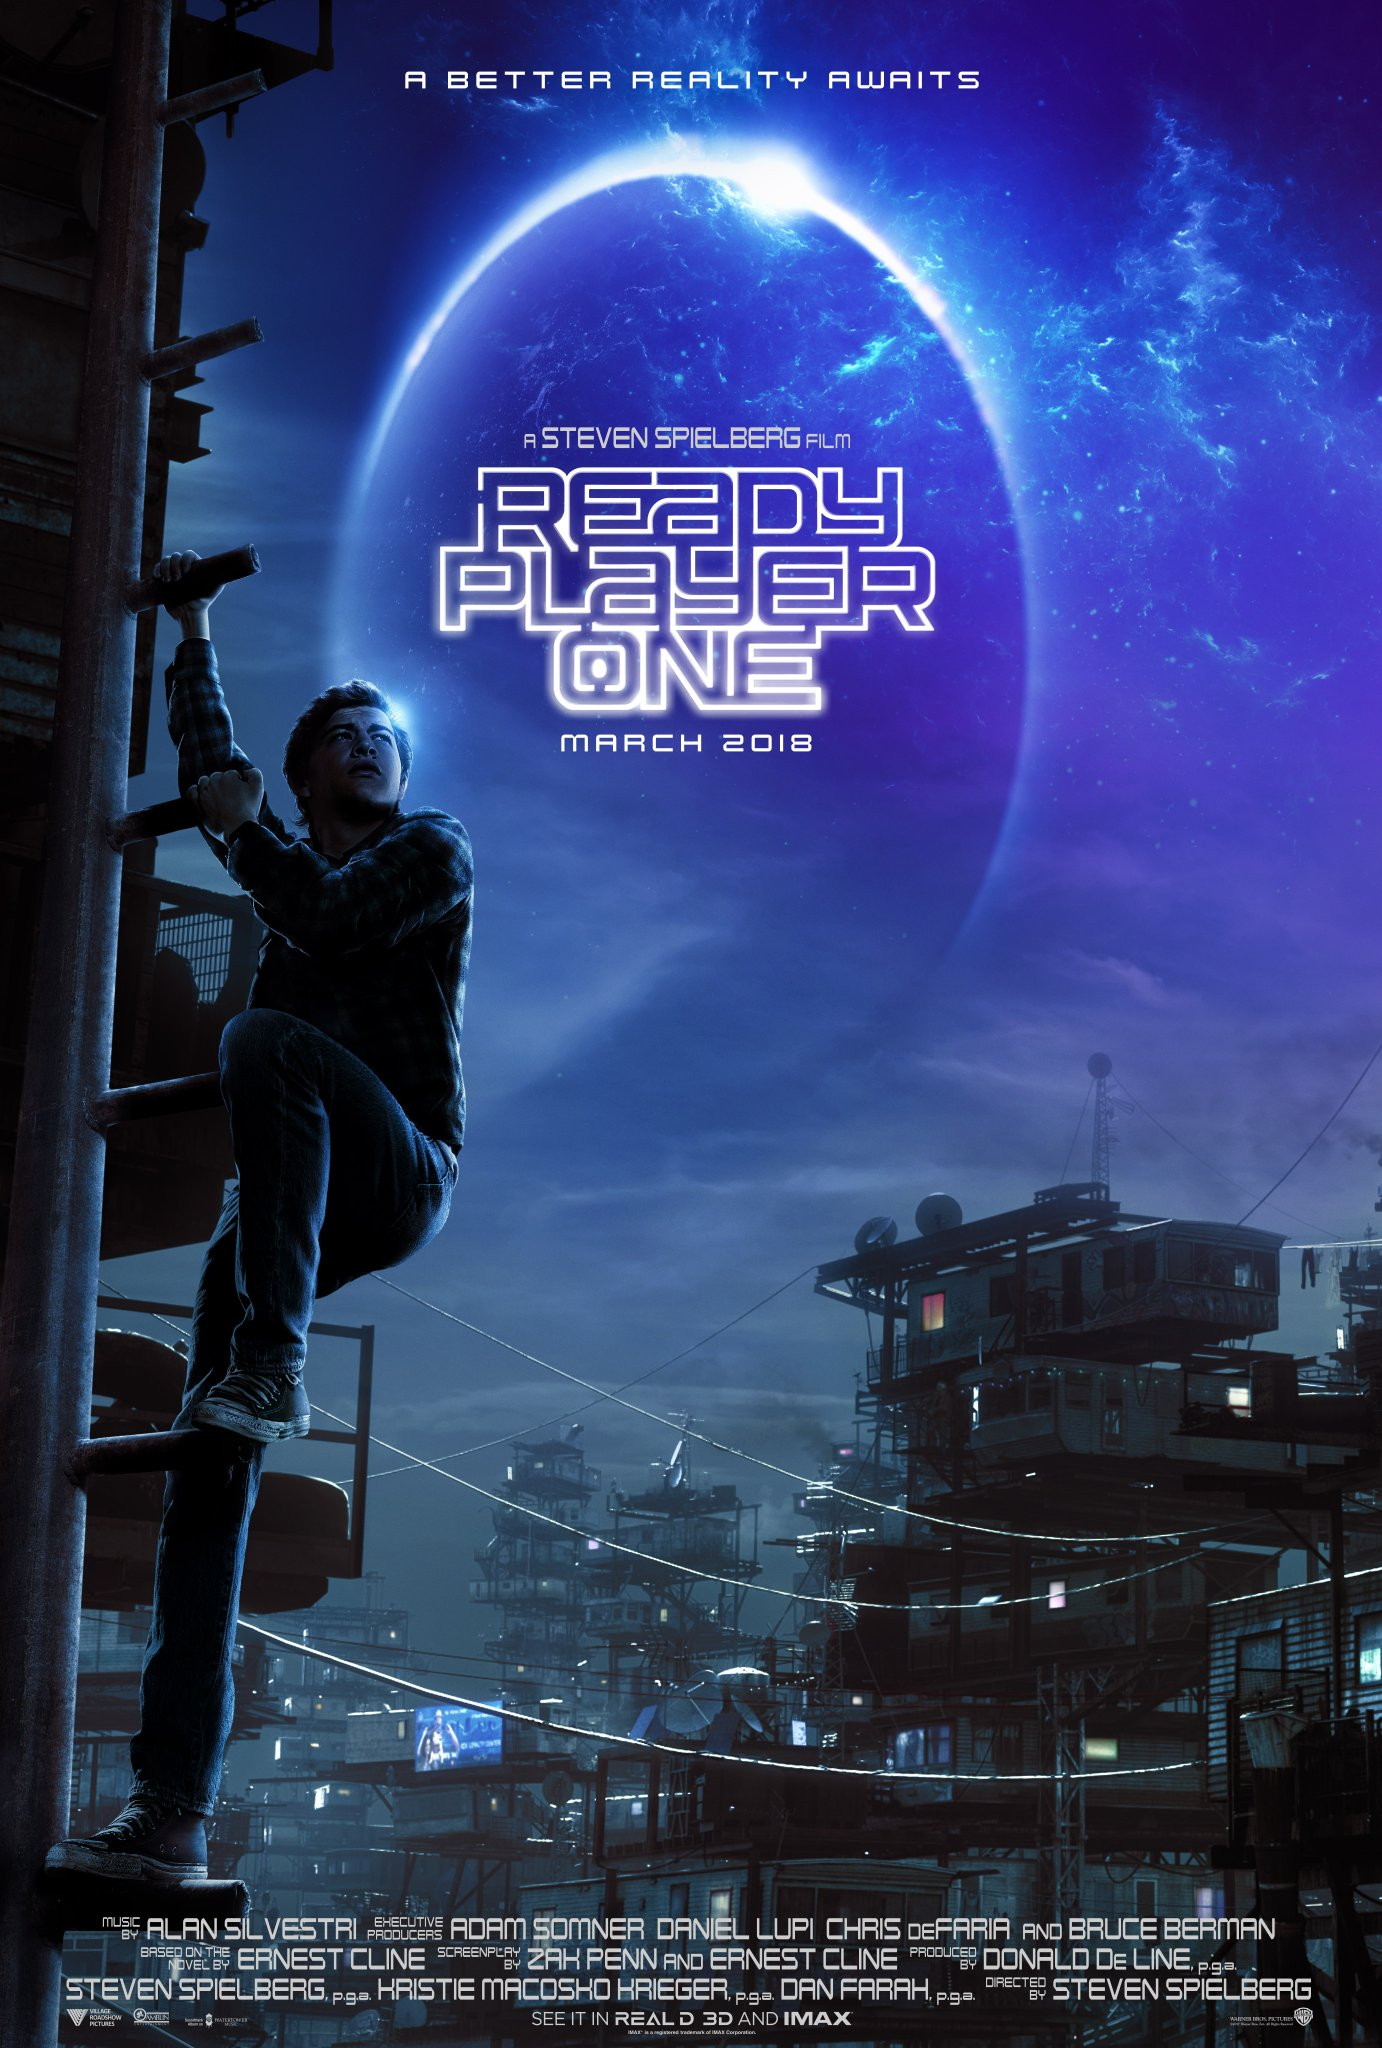 Ready Player One Movie Poster : Teaser Trailer